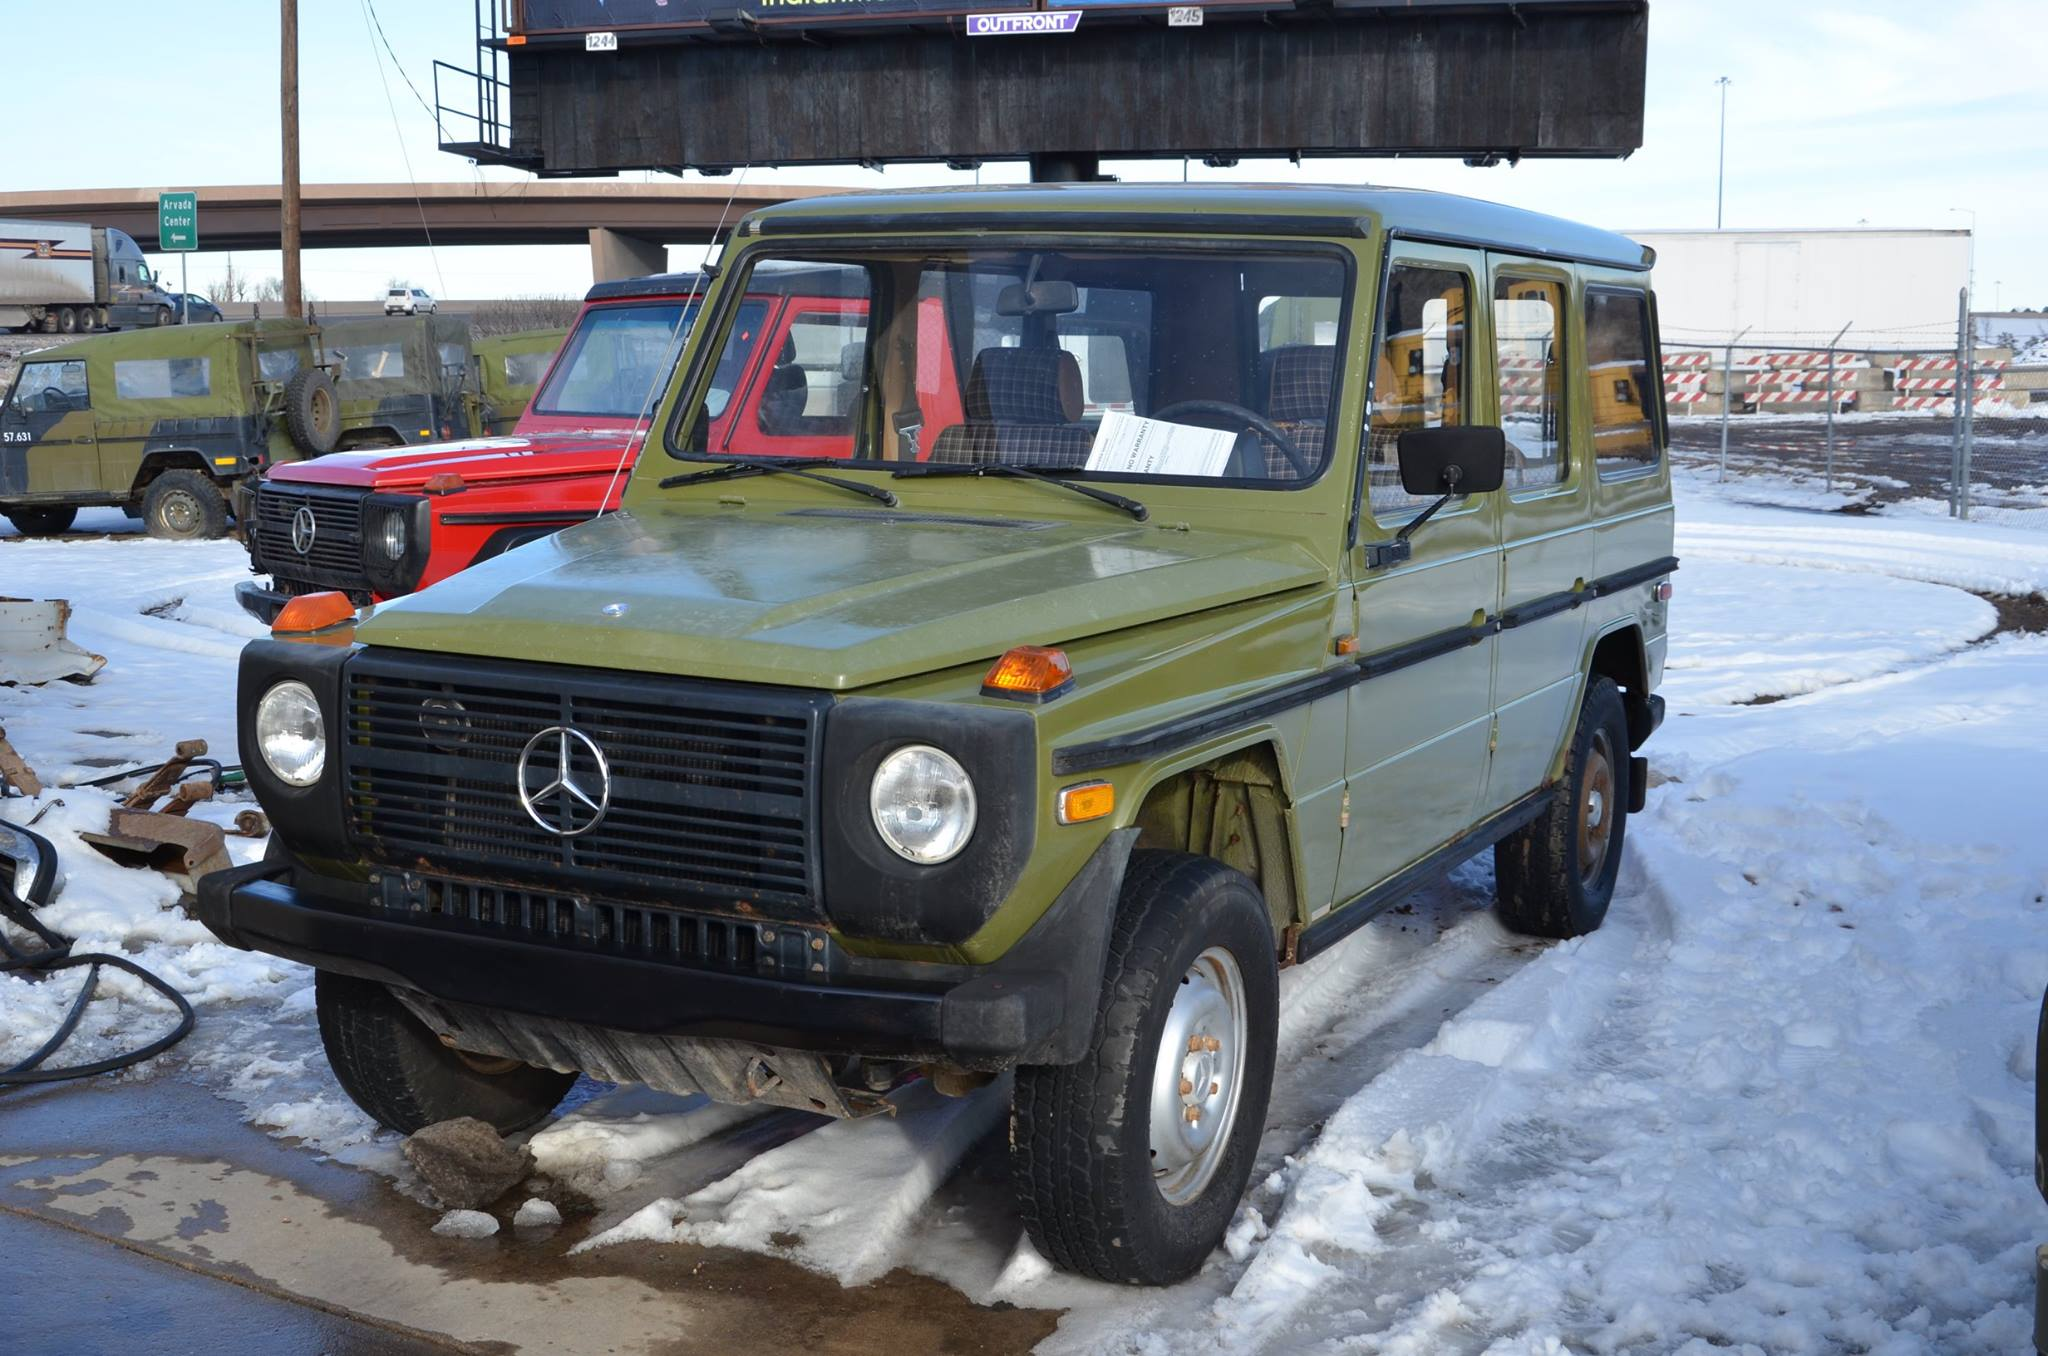 Cheap Military Surplus >> How to Have a G-Wagon That's Cheap and Original Using Army Surplus - autoevolution